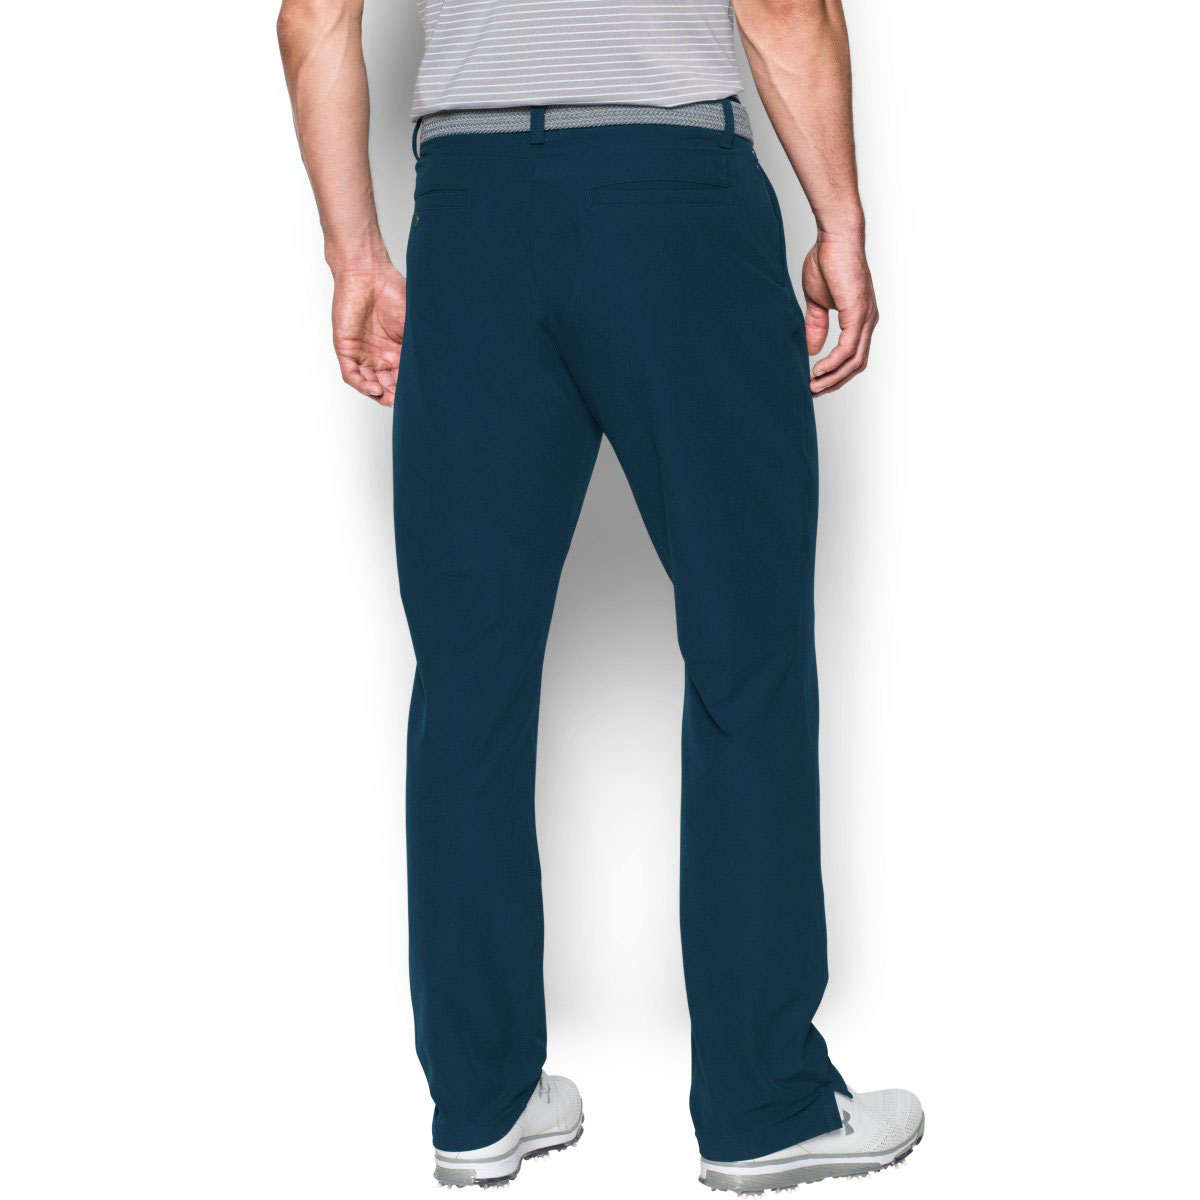 Under-Armour-Mens-Match-Play-ColdGear-Infrared-Taper-Golf-Trousers-52-OFF-RRP thumbnail 3